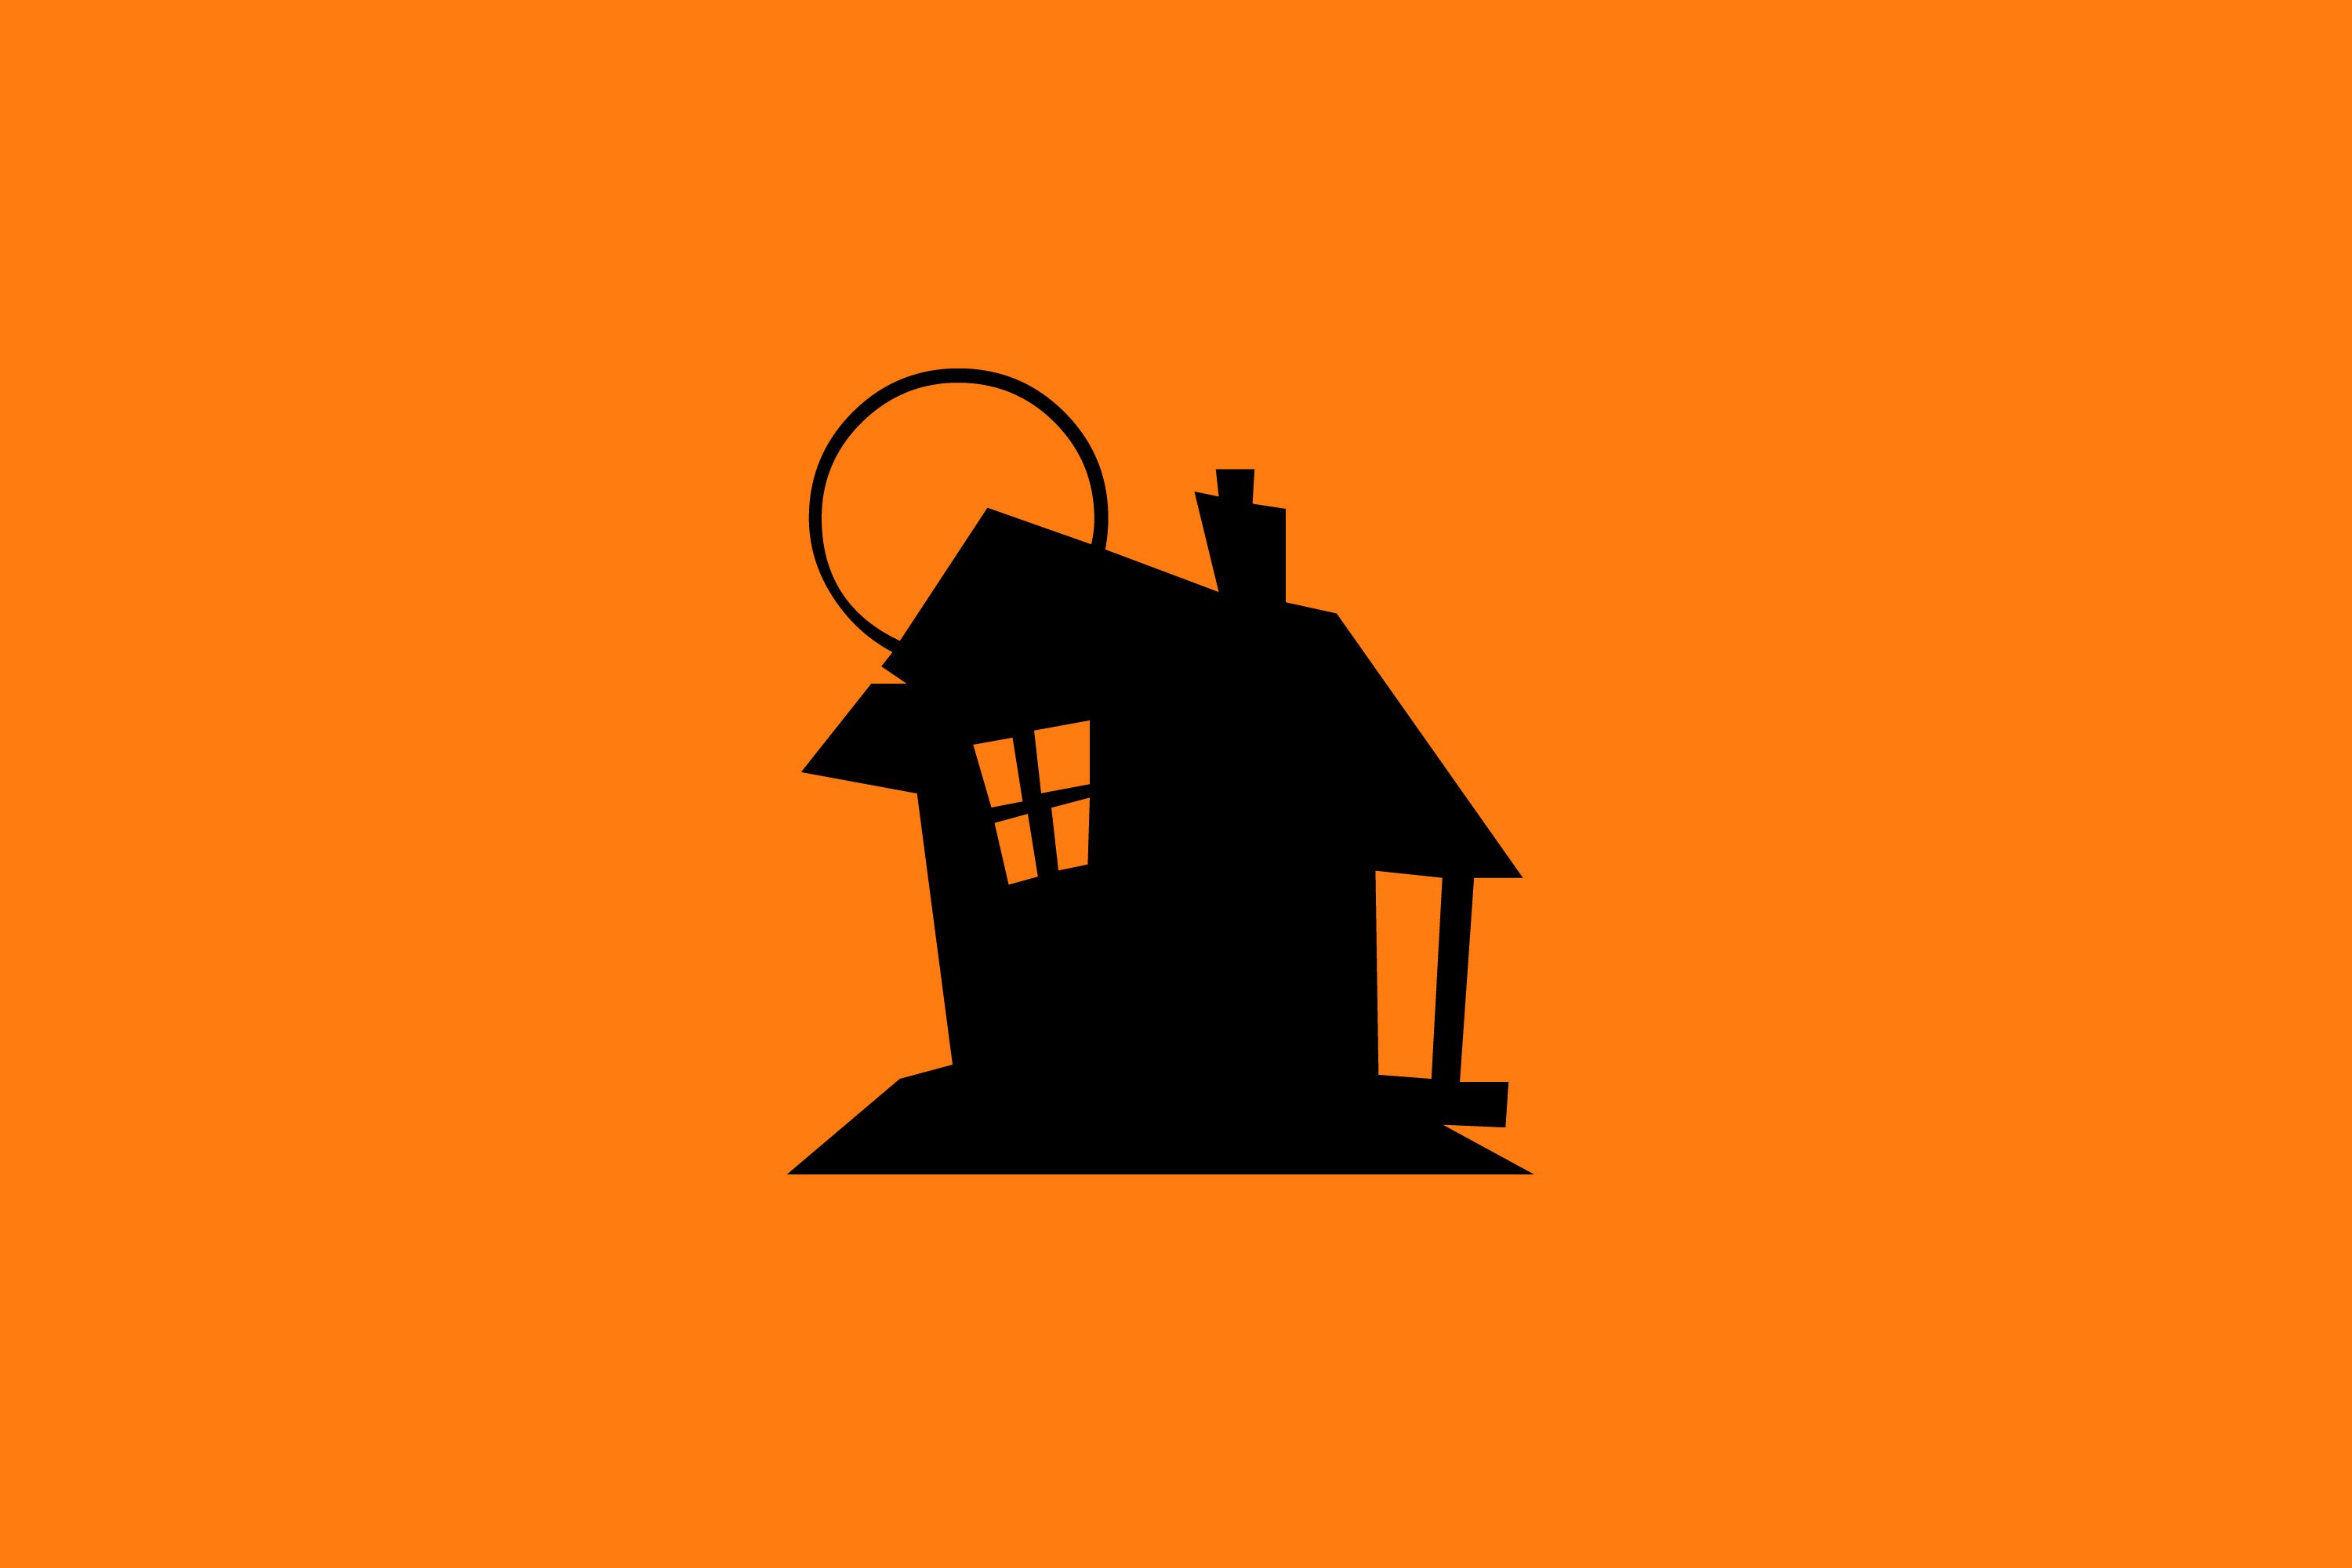 Haunted clipart background. Image of house creepyhalloweenimages